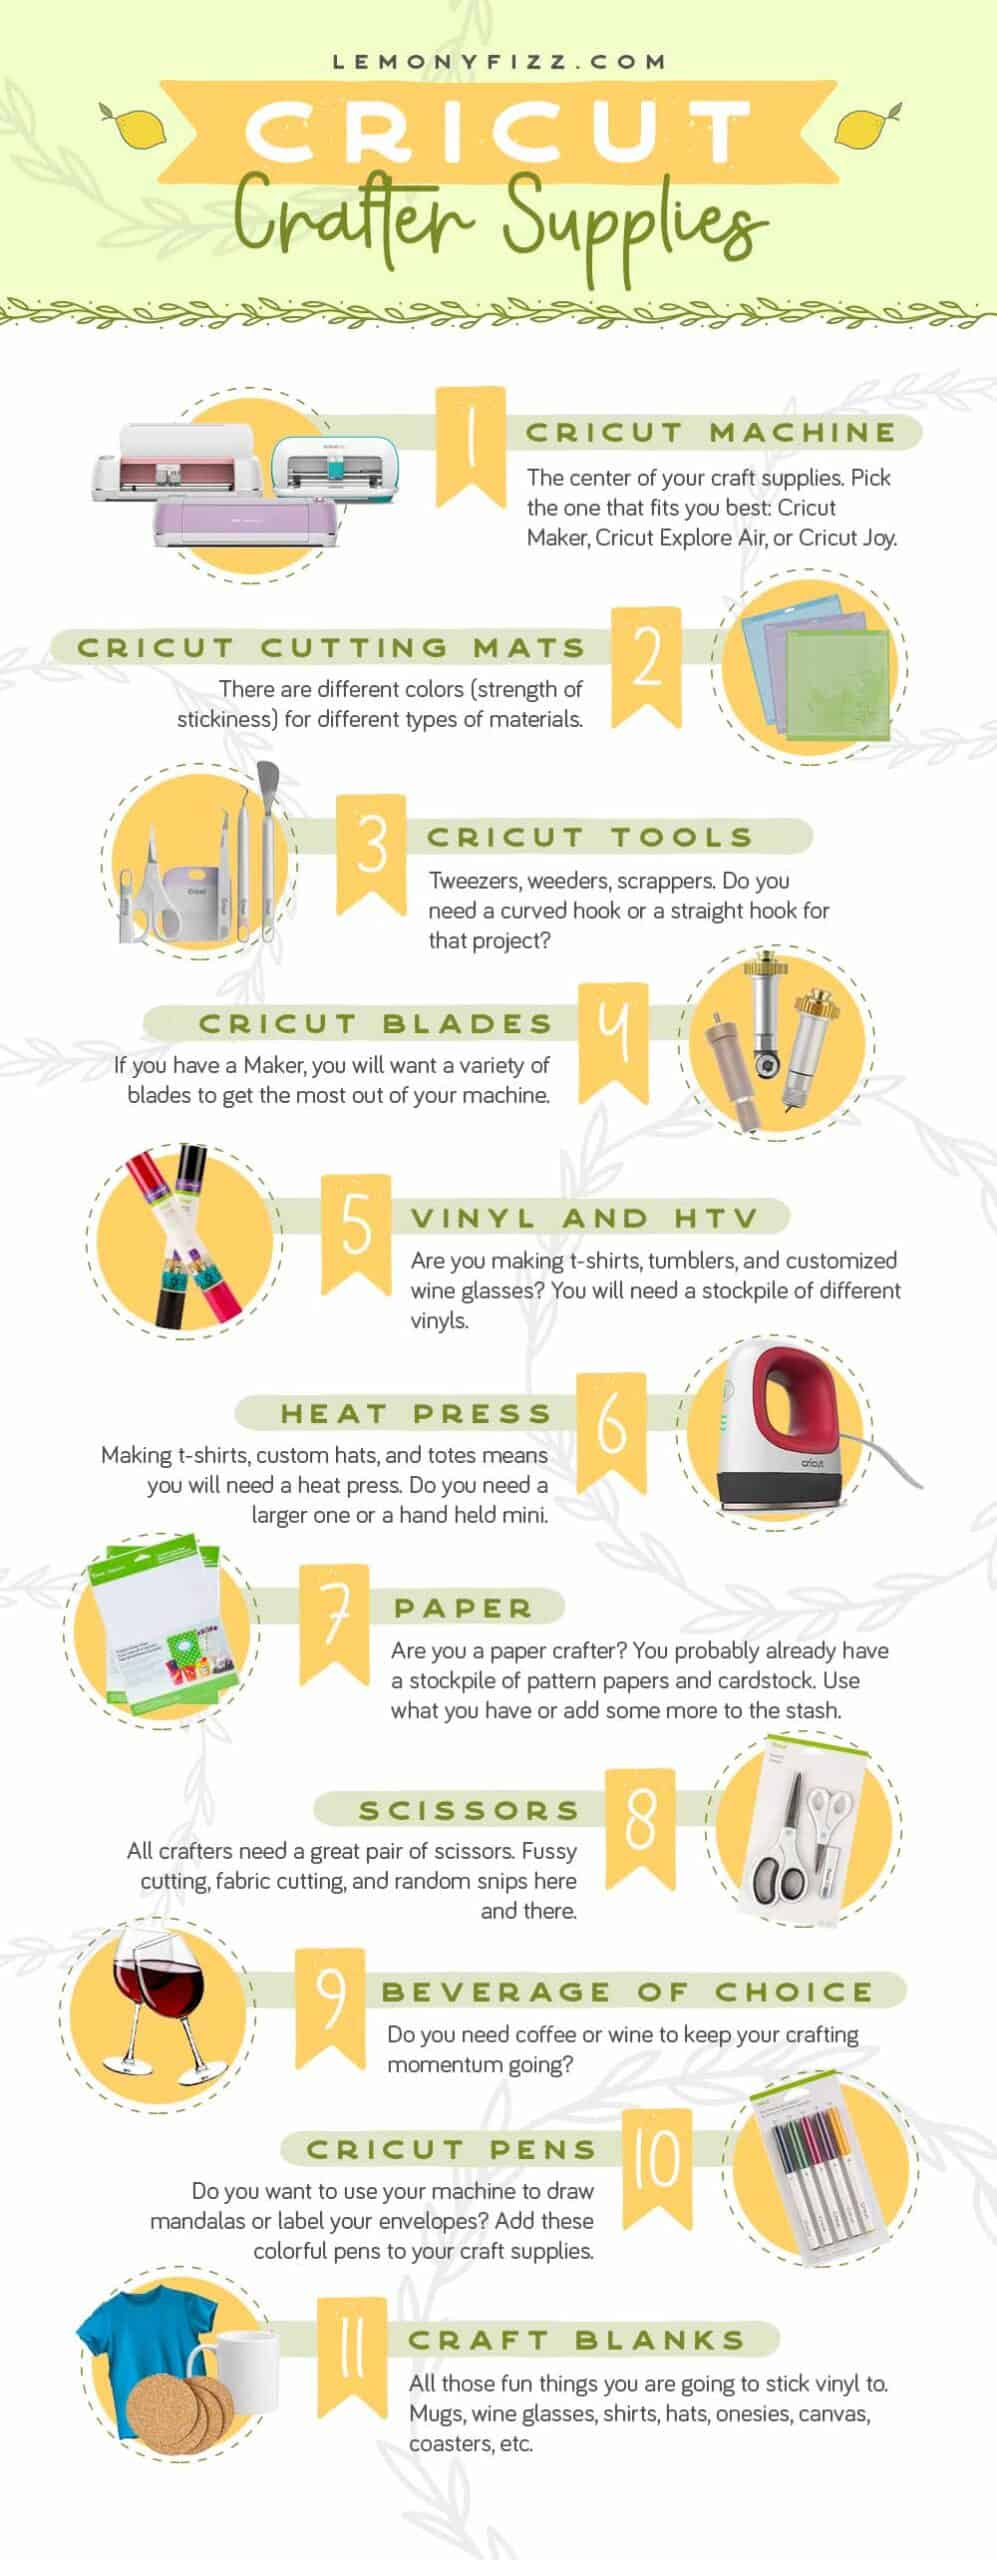 Cricut Crafter Supplies infographic. Tools and accessories for Cricut beginners and crafting.